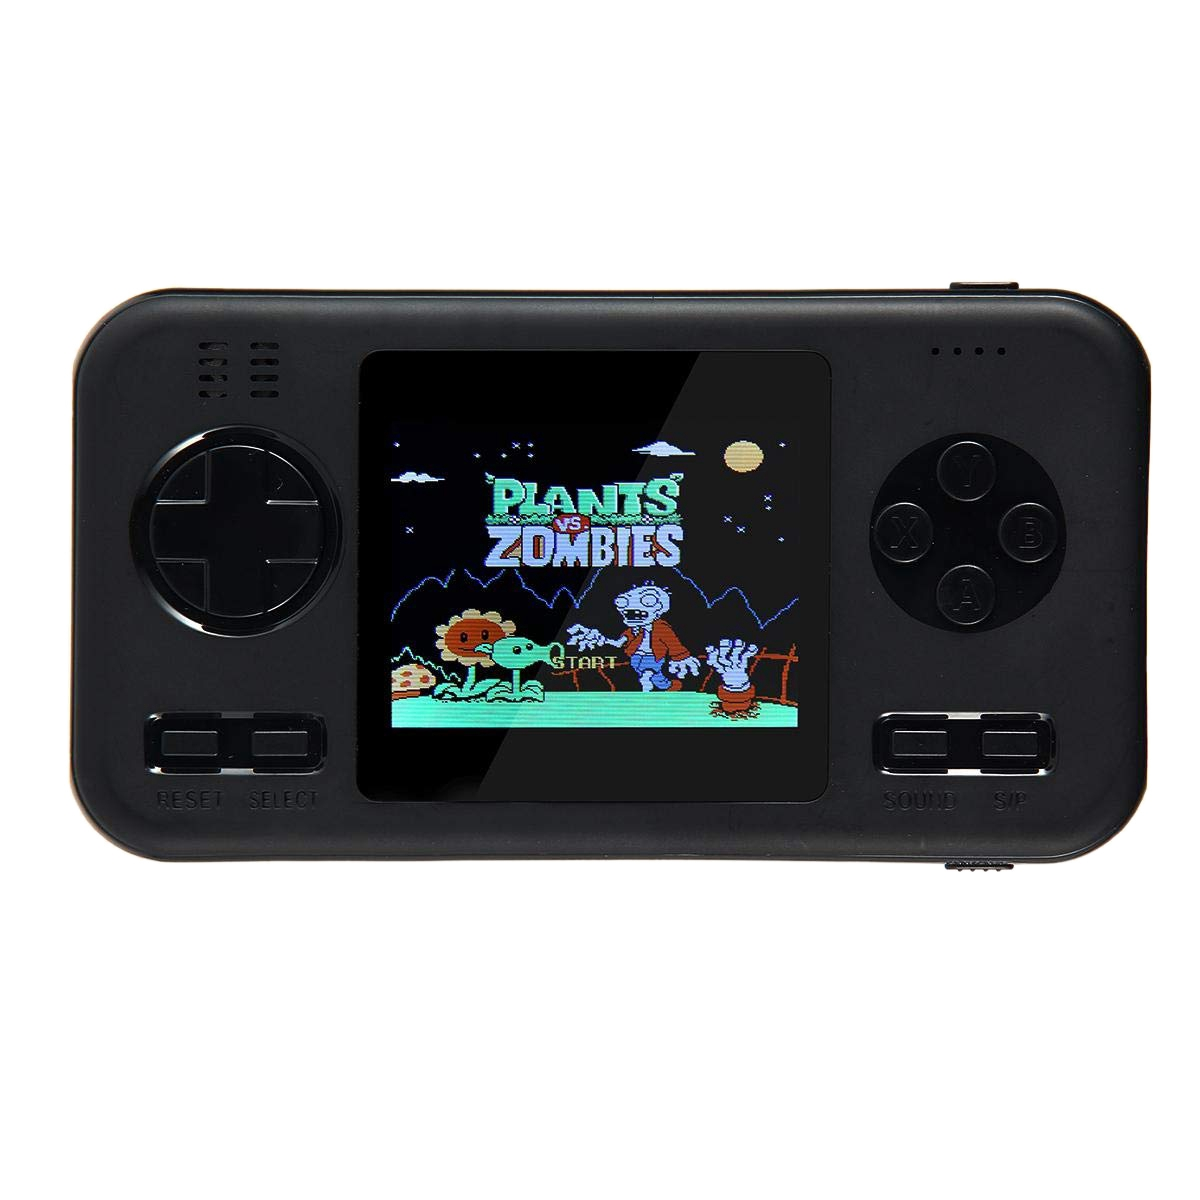 416 Games Retro Game Console Travel Portable Gaming System,Power Bank 8000MAh Battery 2.8 Inch Color Screen Handheld Game Machin image